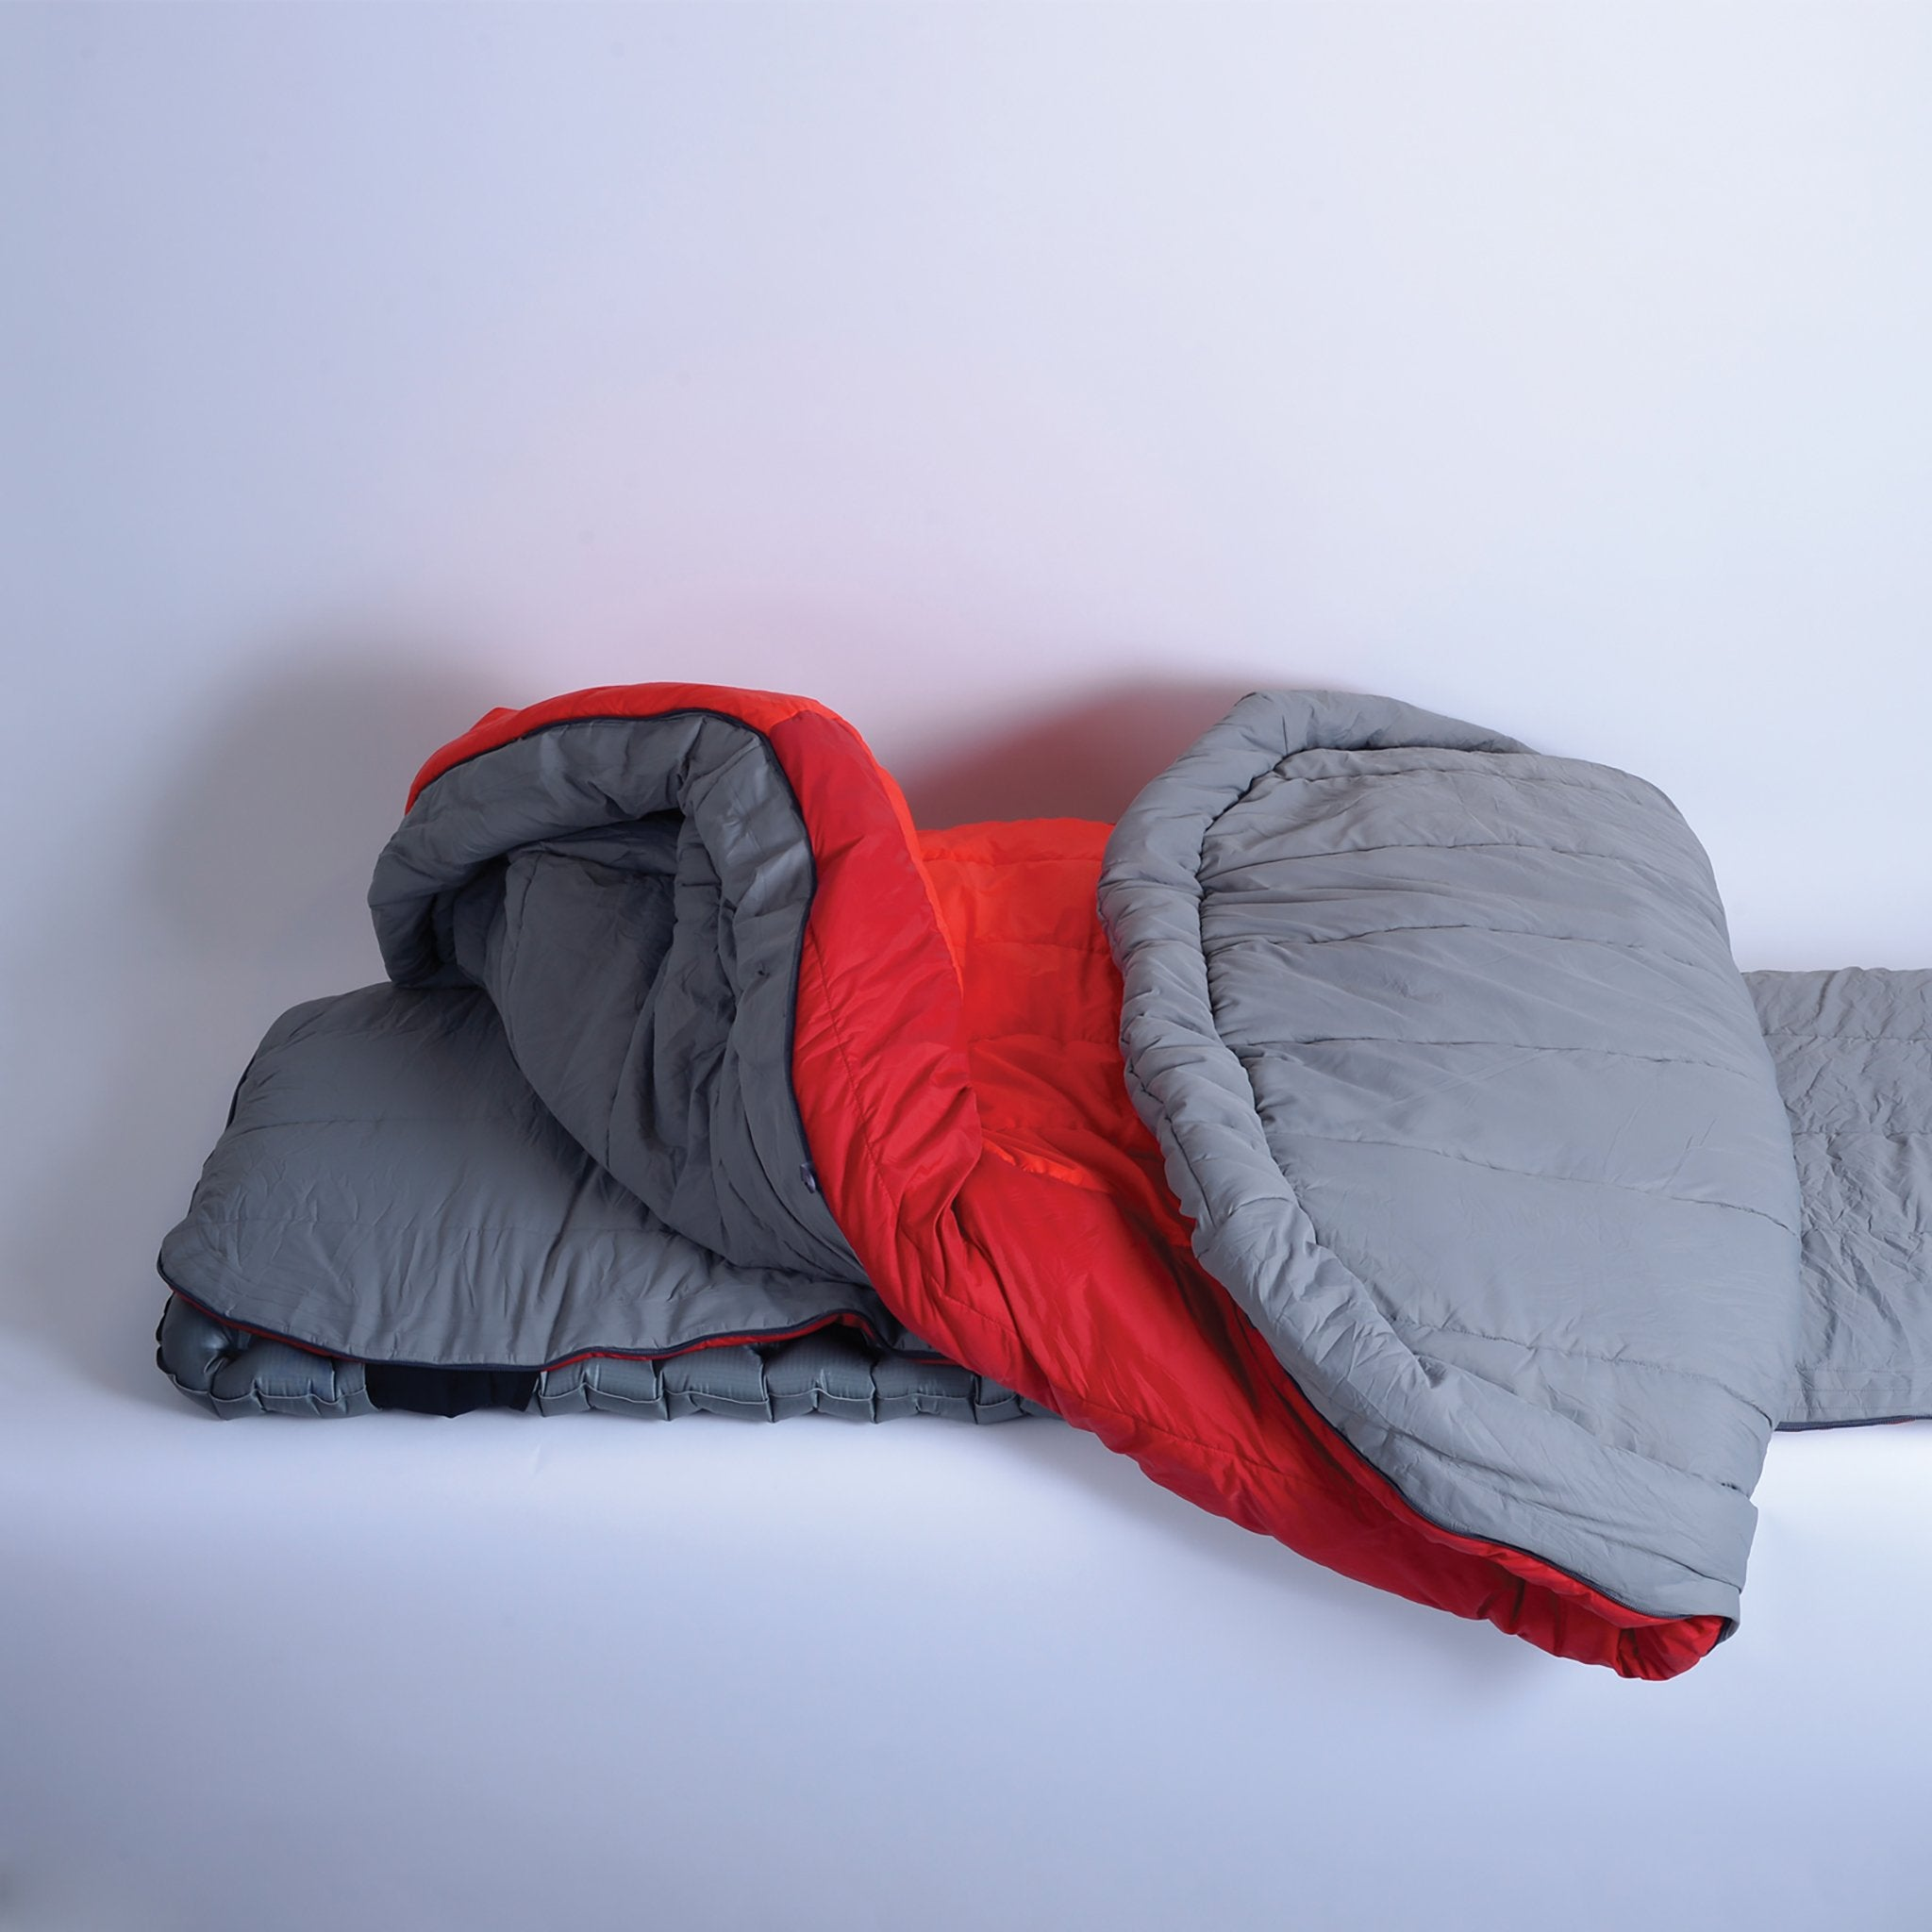 Basecamp BC Large Wide Down Camping Sleeping Bag _ full zipper